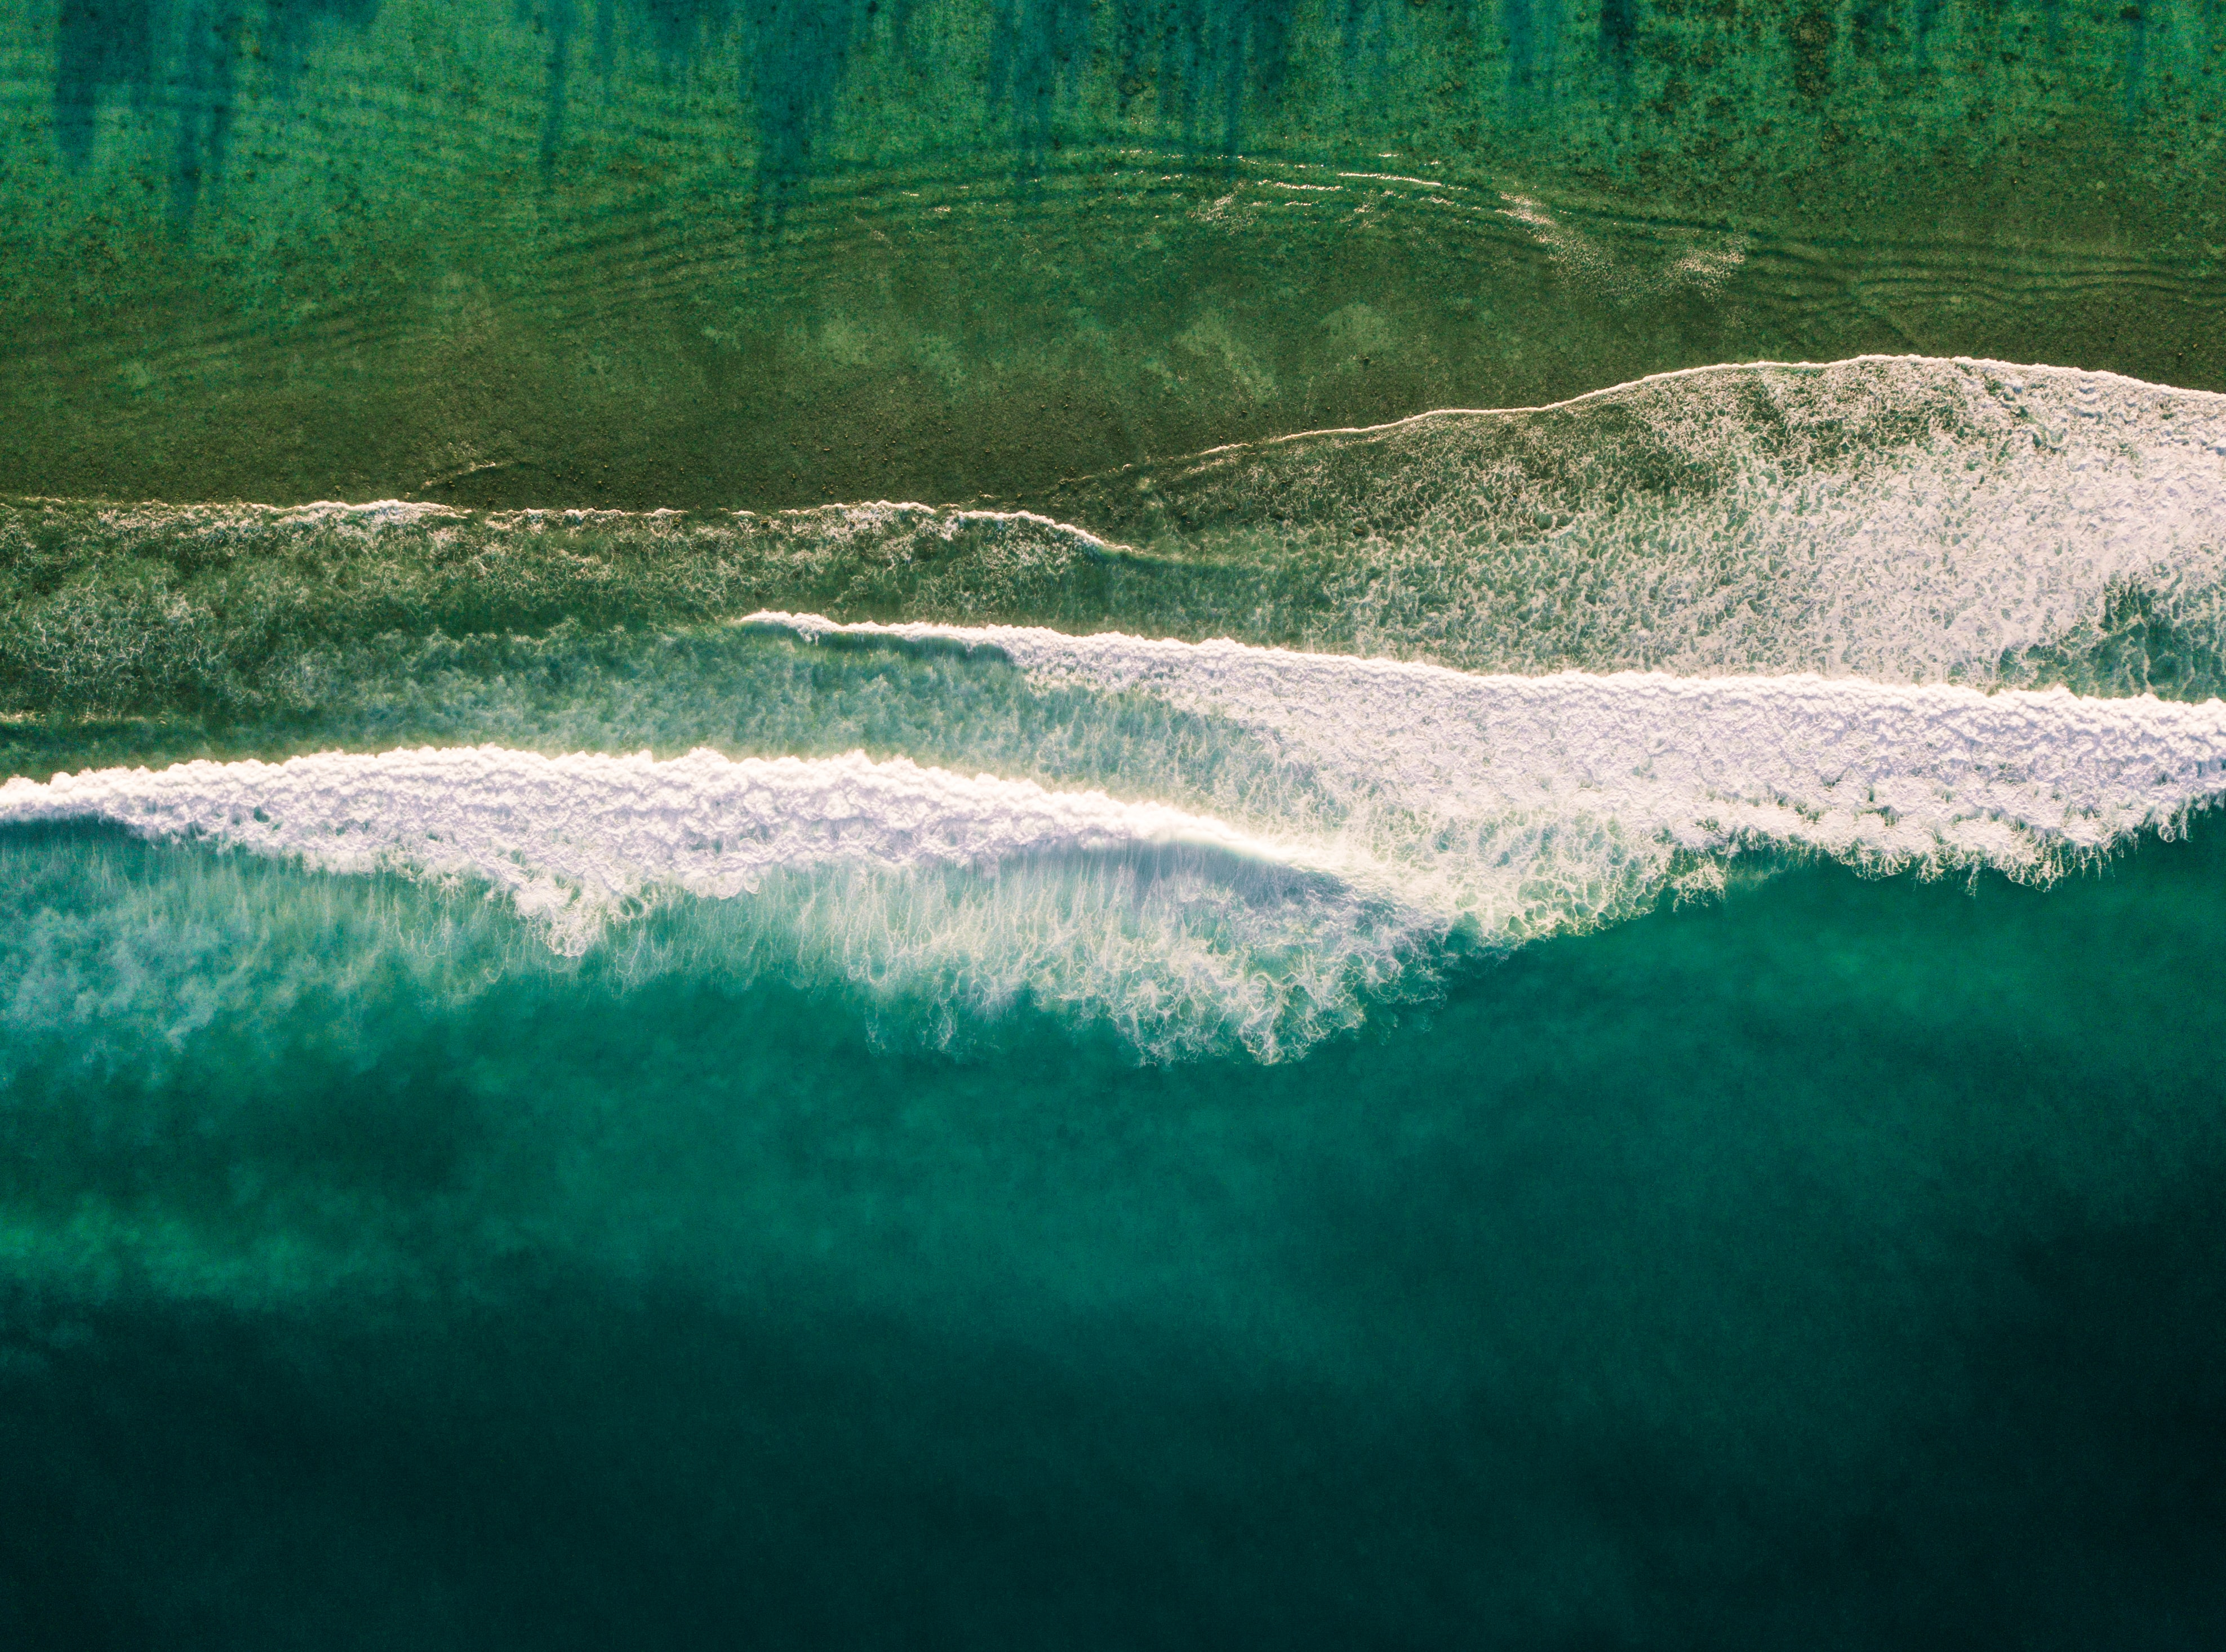 bird's eye view of water wave